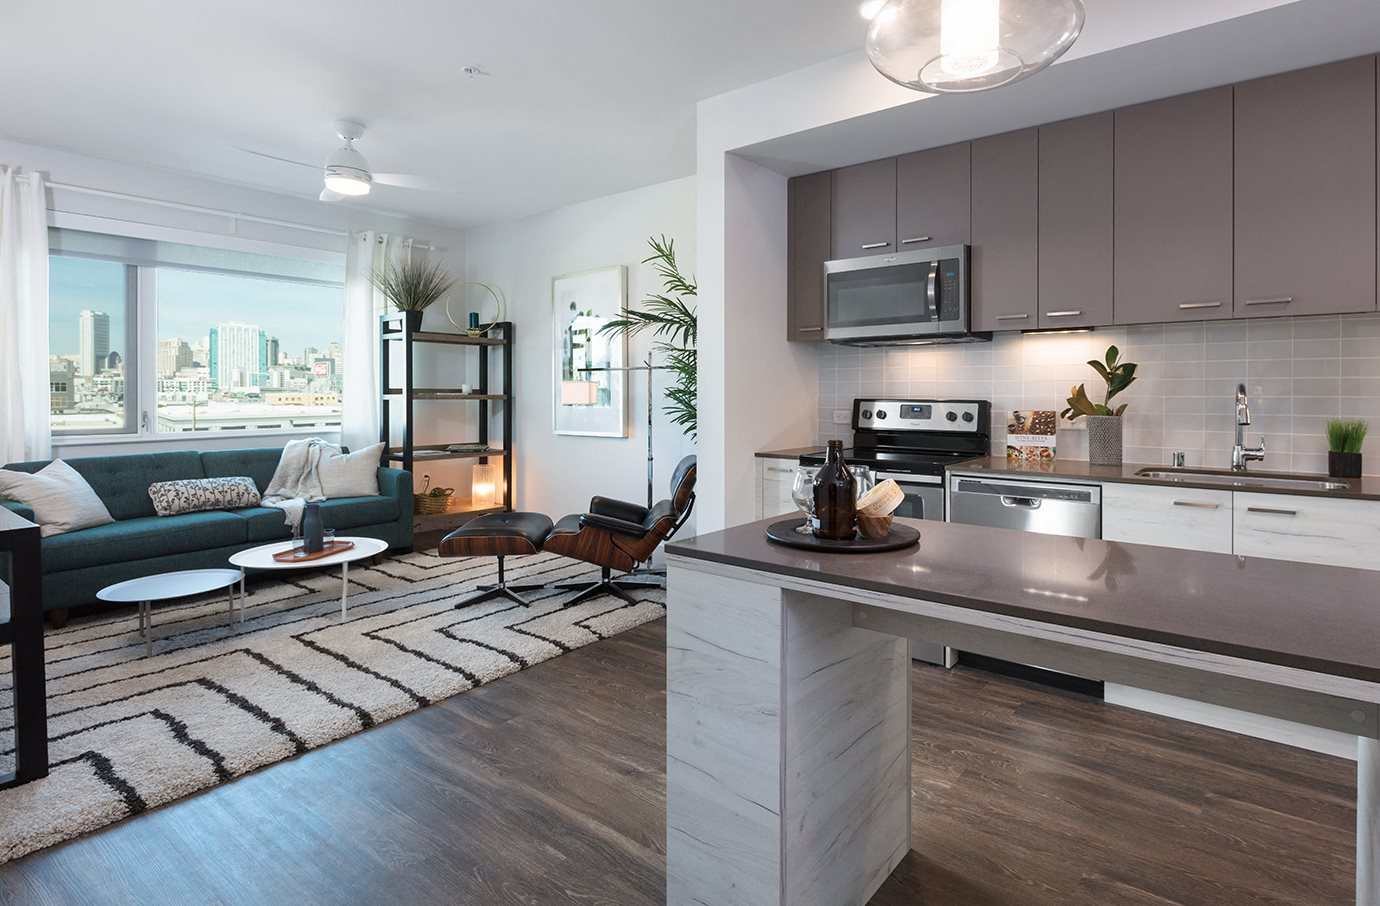 Modern Kitchen at Mission Bay by Windsor